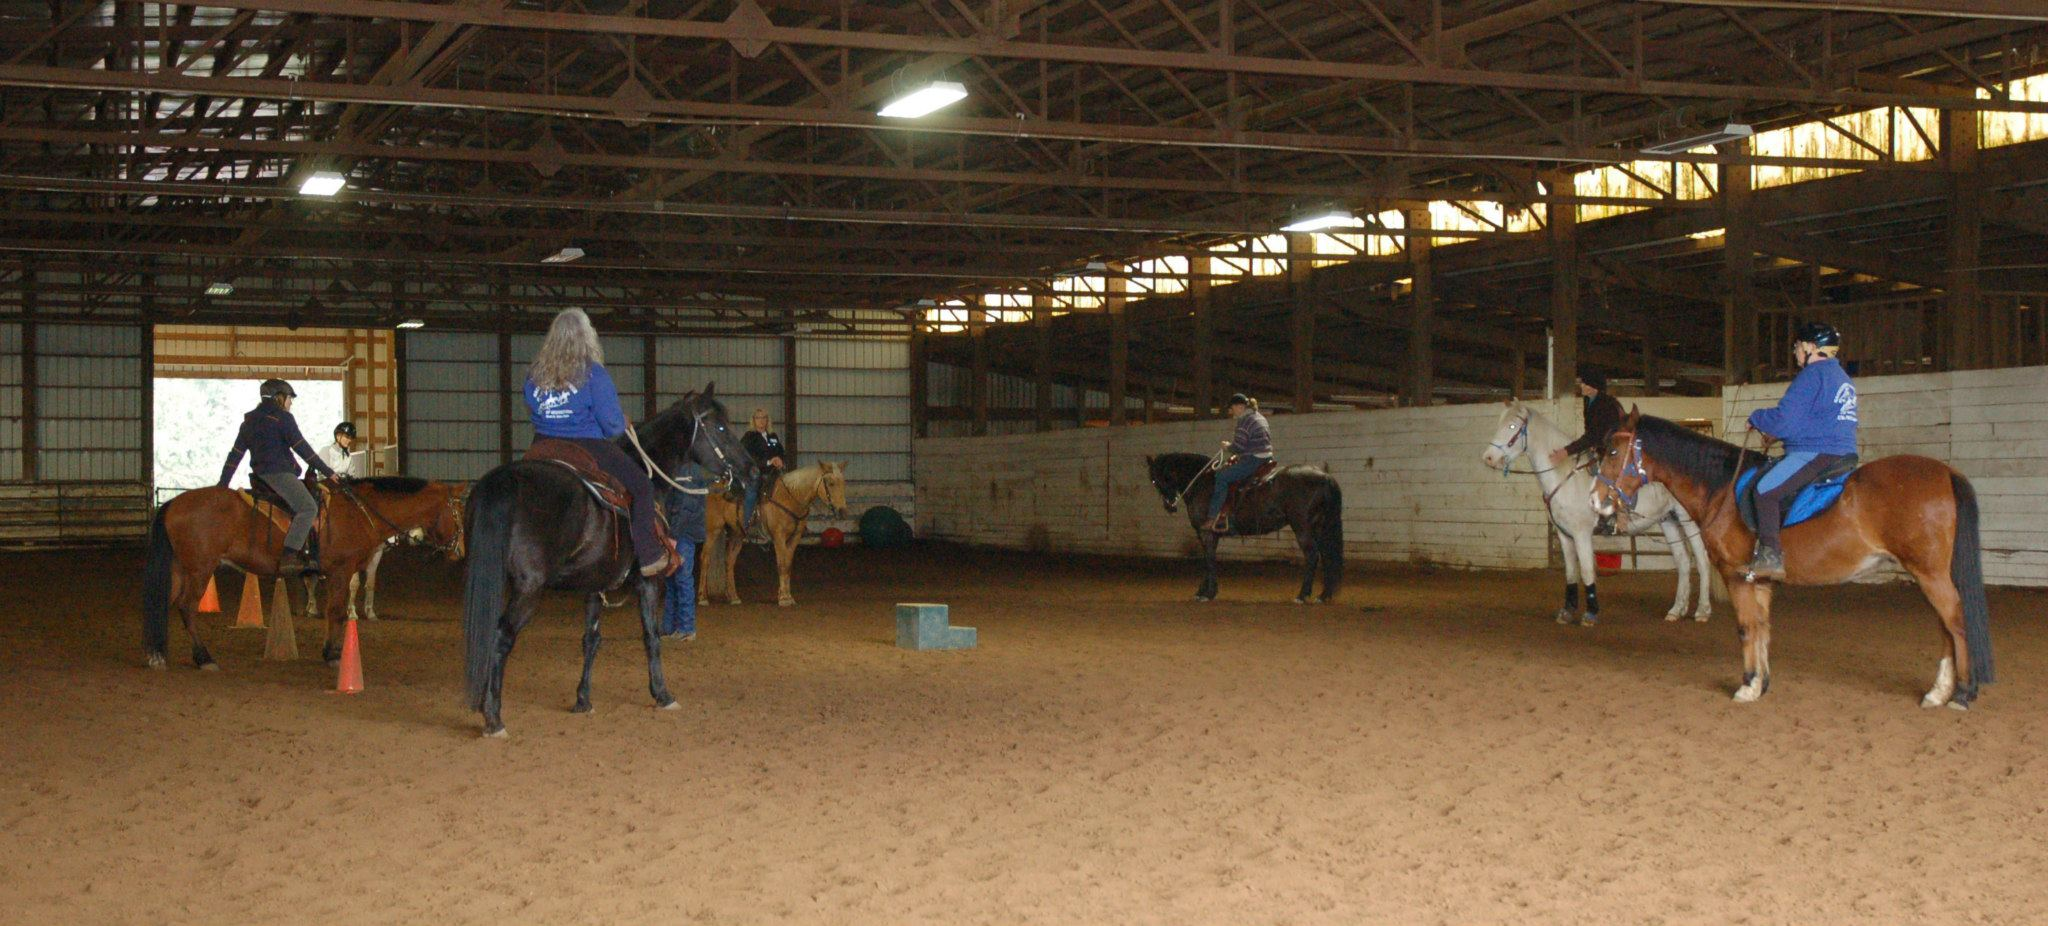 Getting started under saddle after ground work. Relaxed horses ready to learn more.  At Ridgefield Gaited Horse clinic.